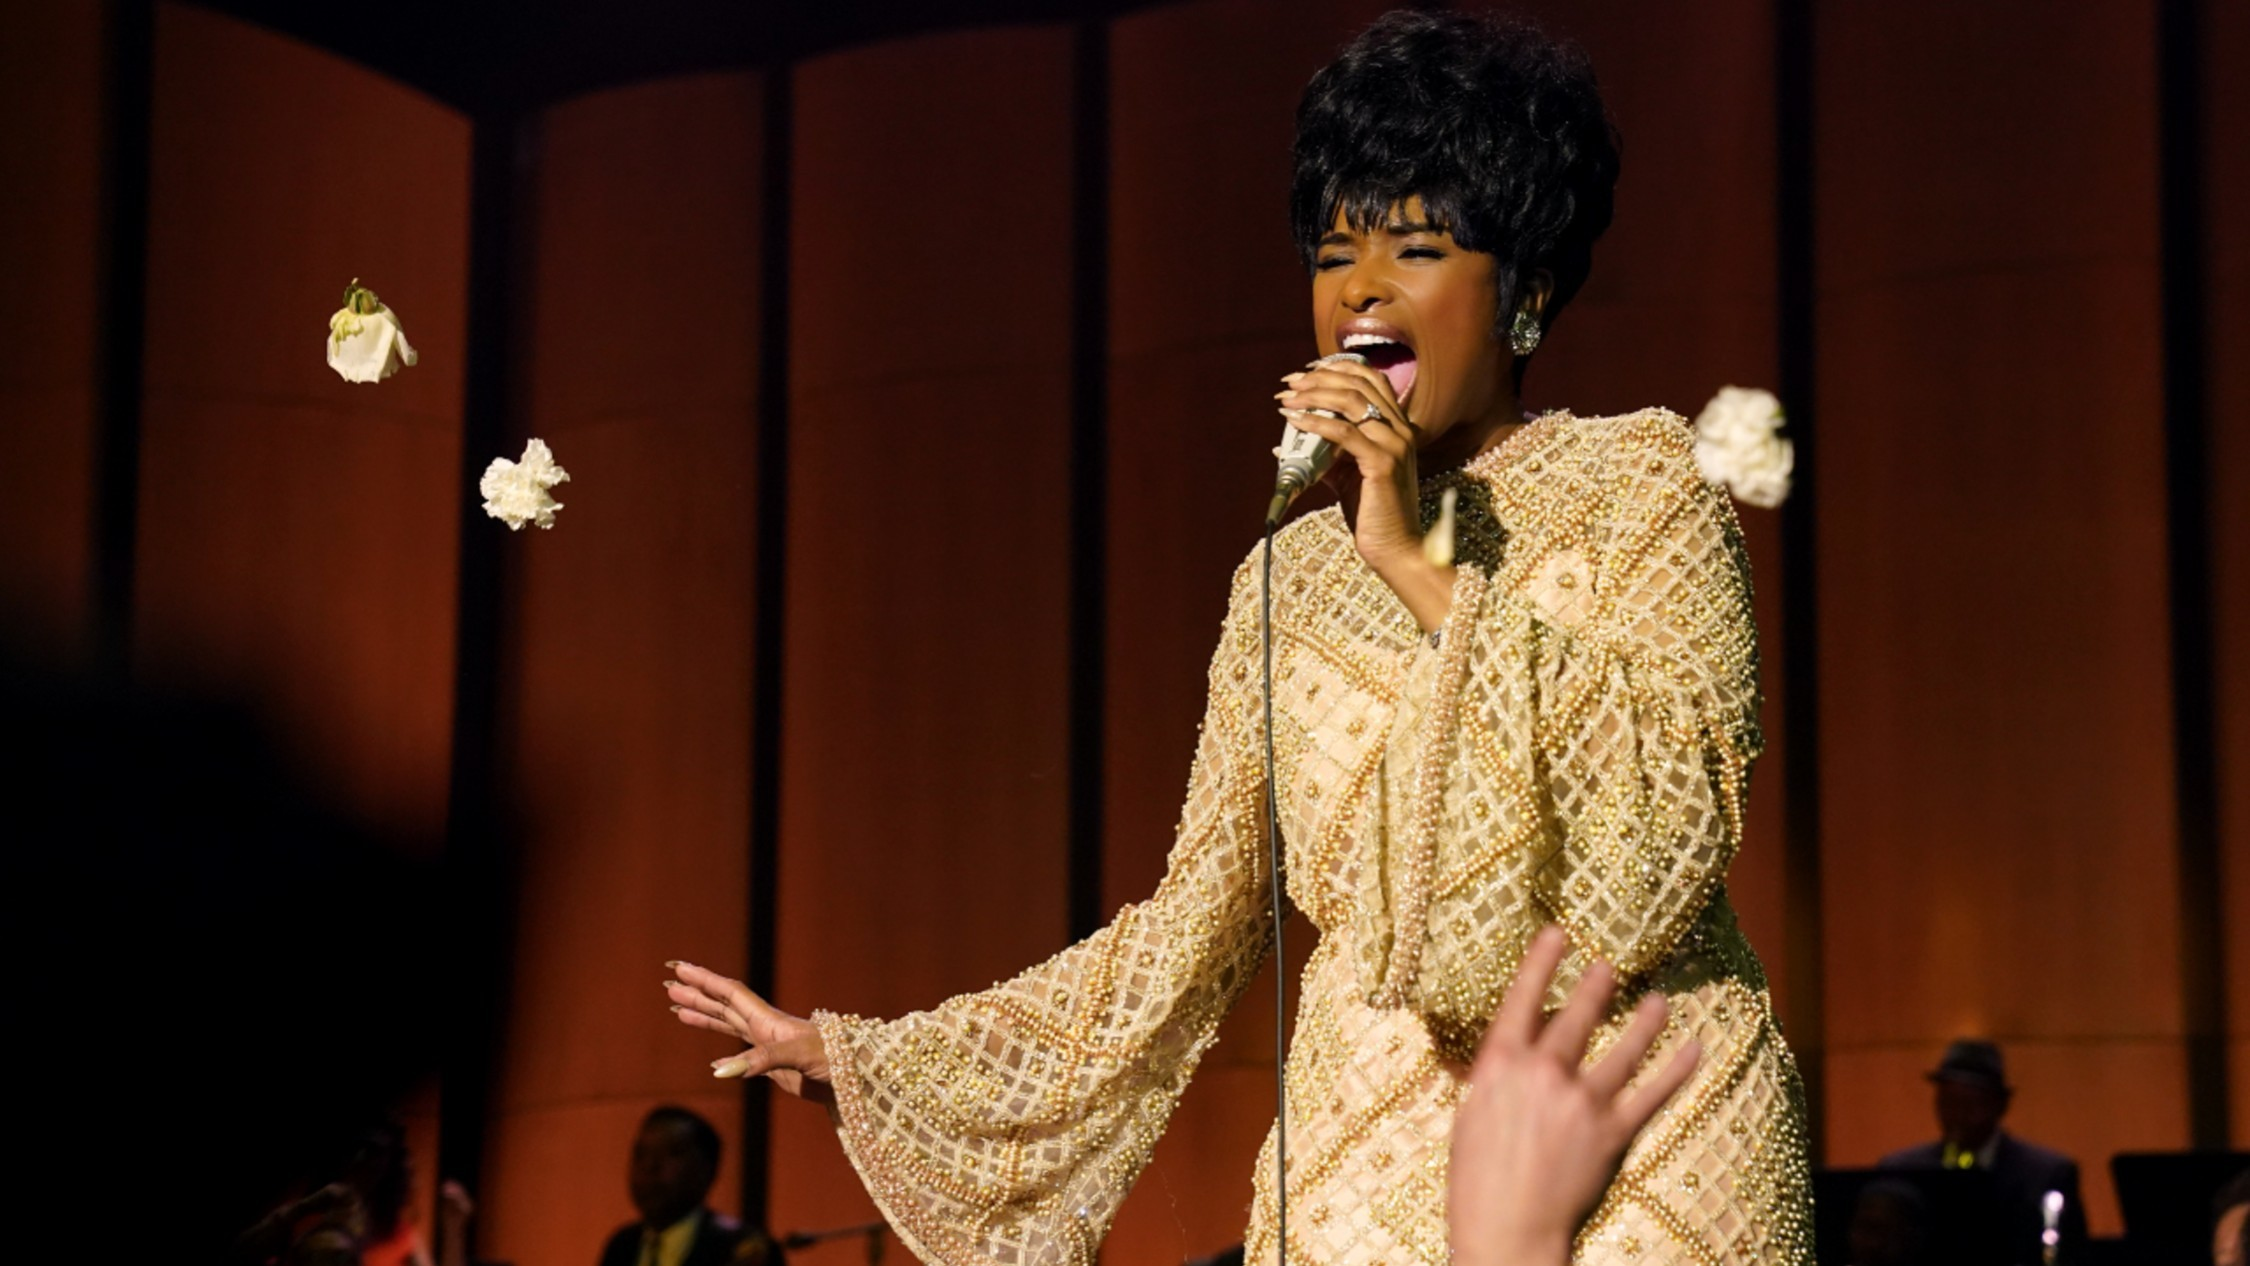 'Respect' trailer drops with Jennifer Hudson as Aretha Franklin